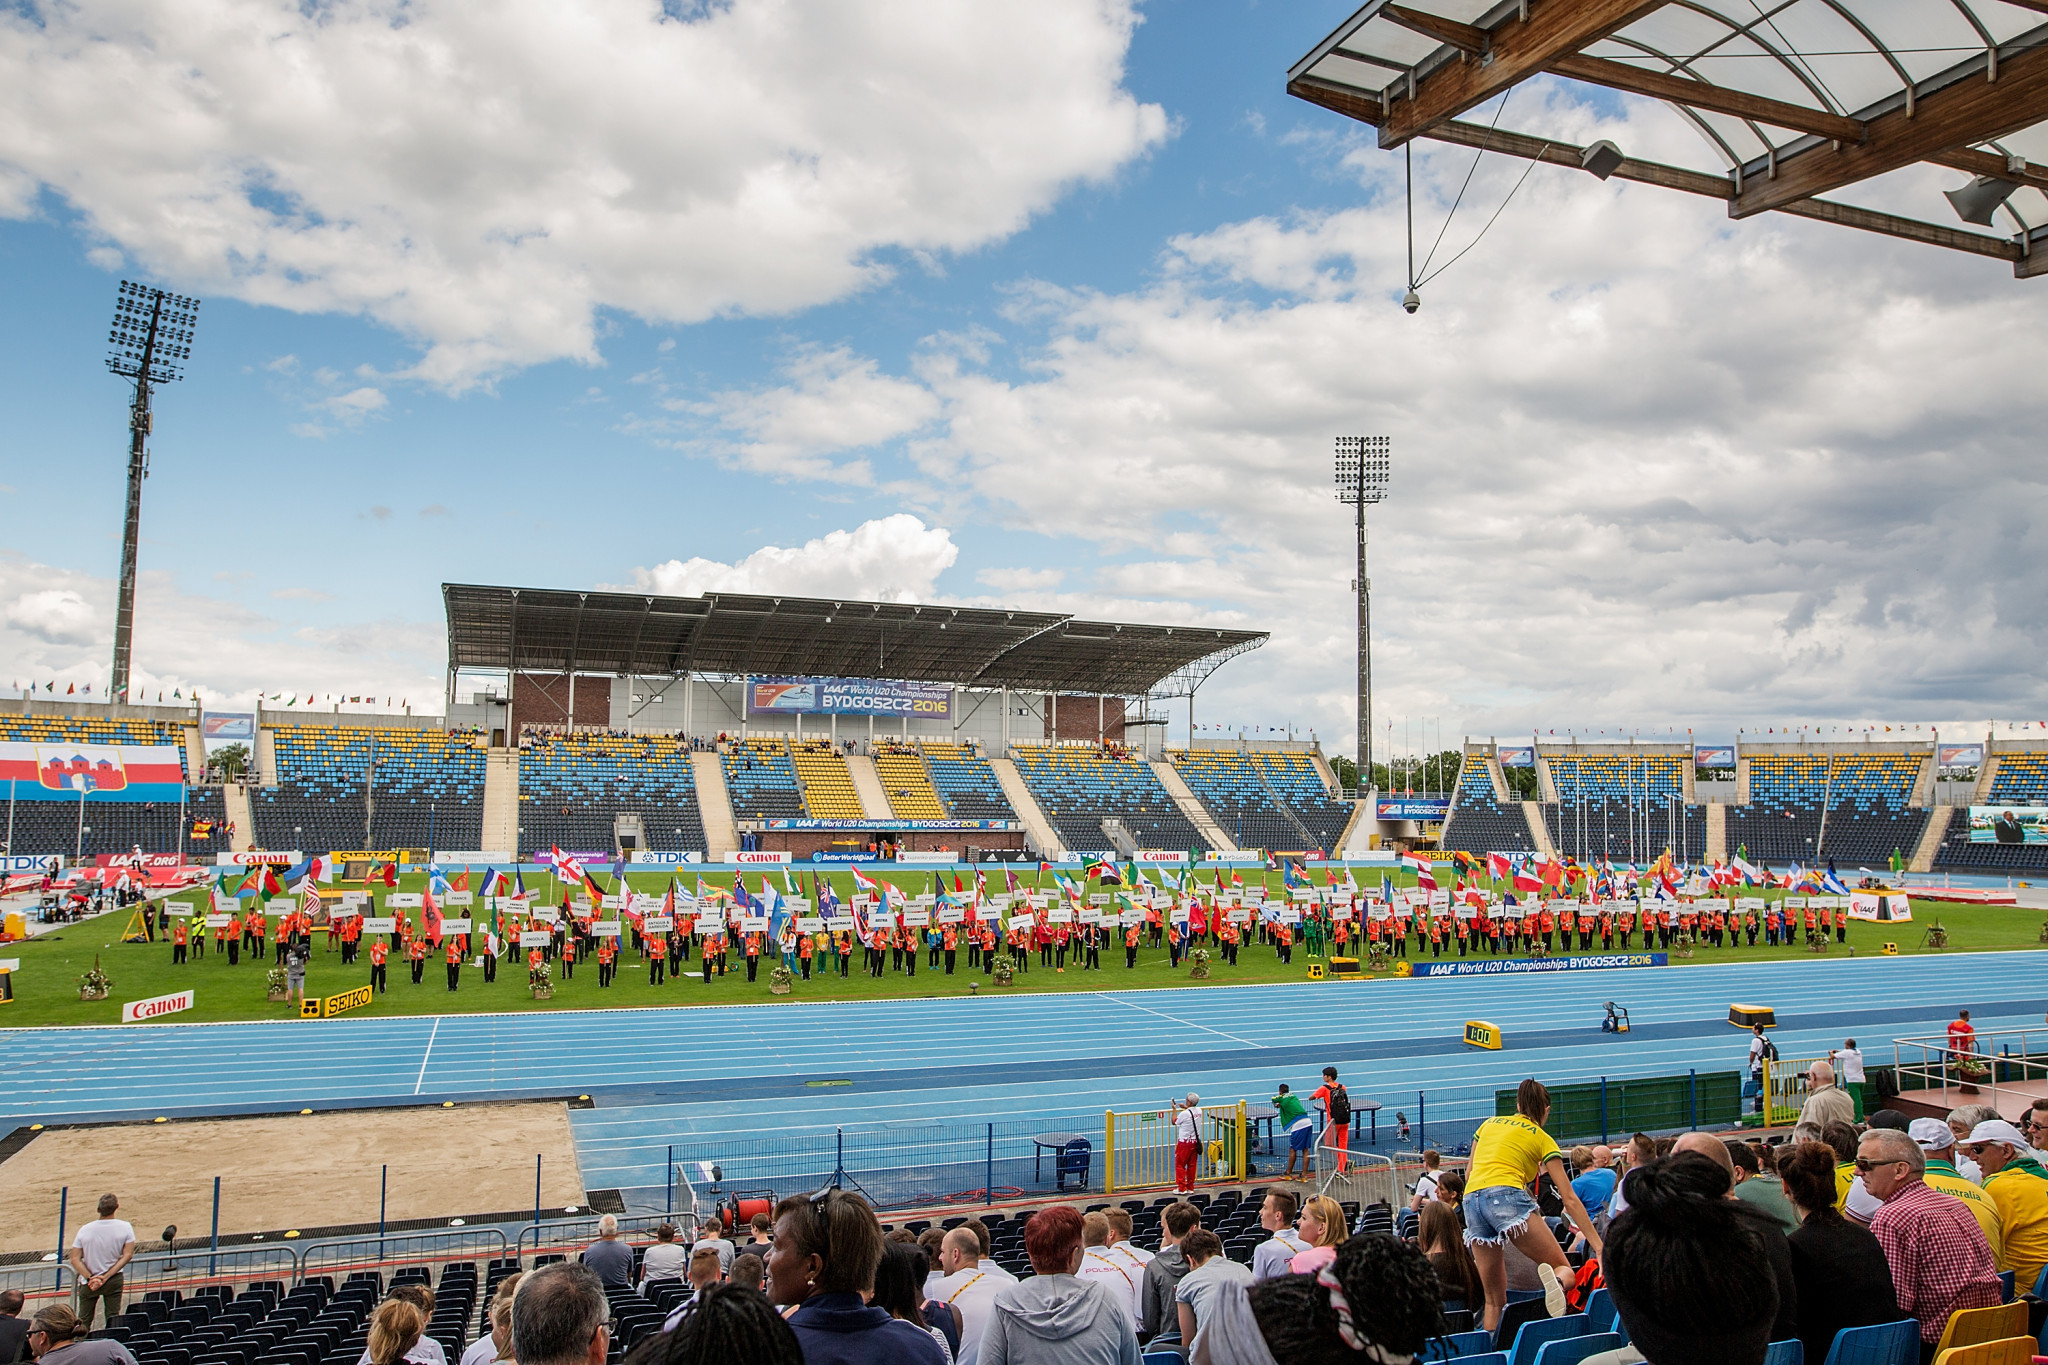 Bydgoszcz awarded 2020 World Para Athletics European Championships